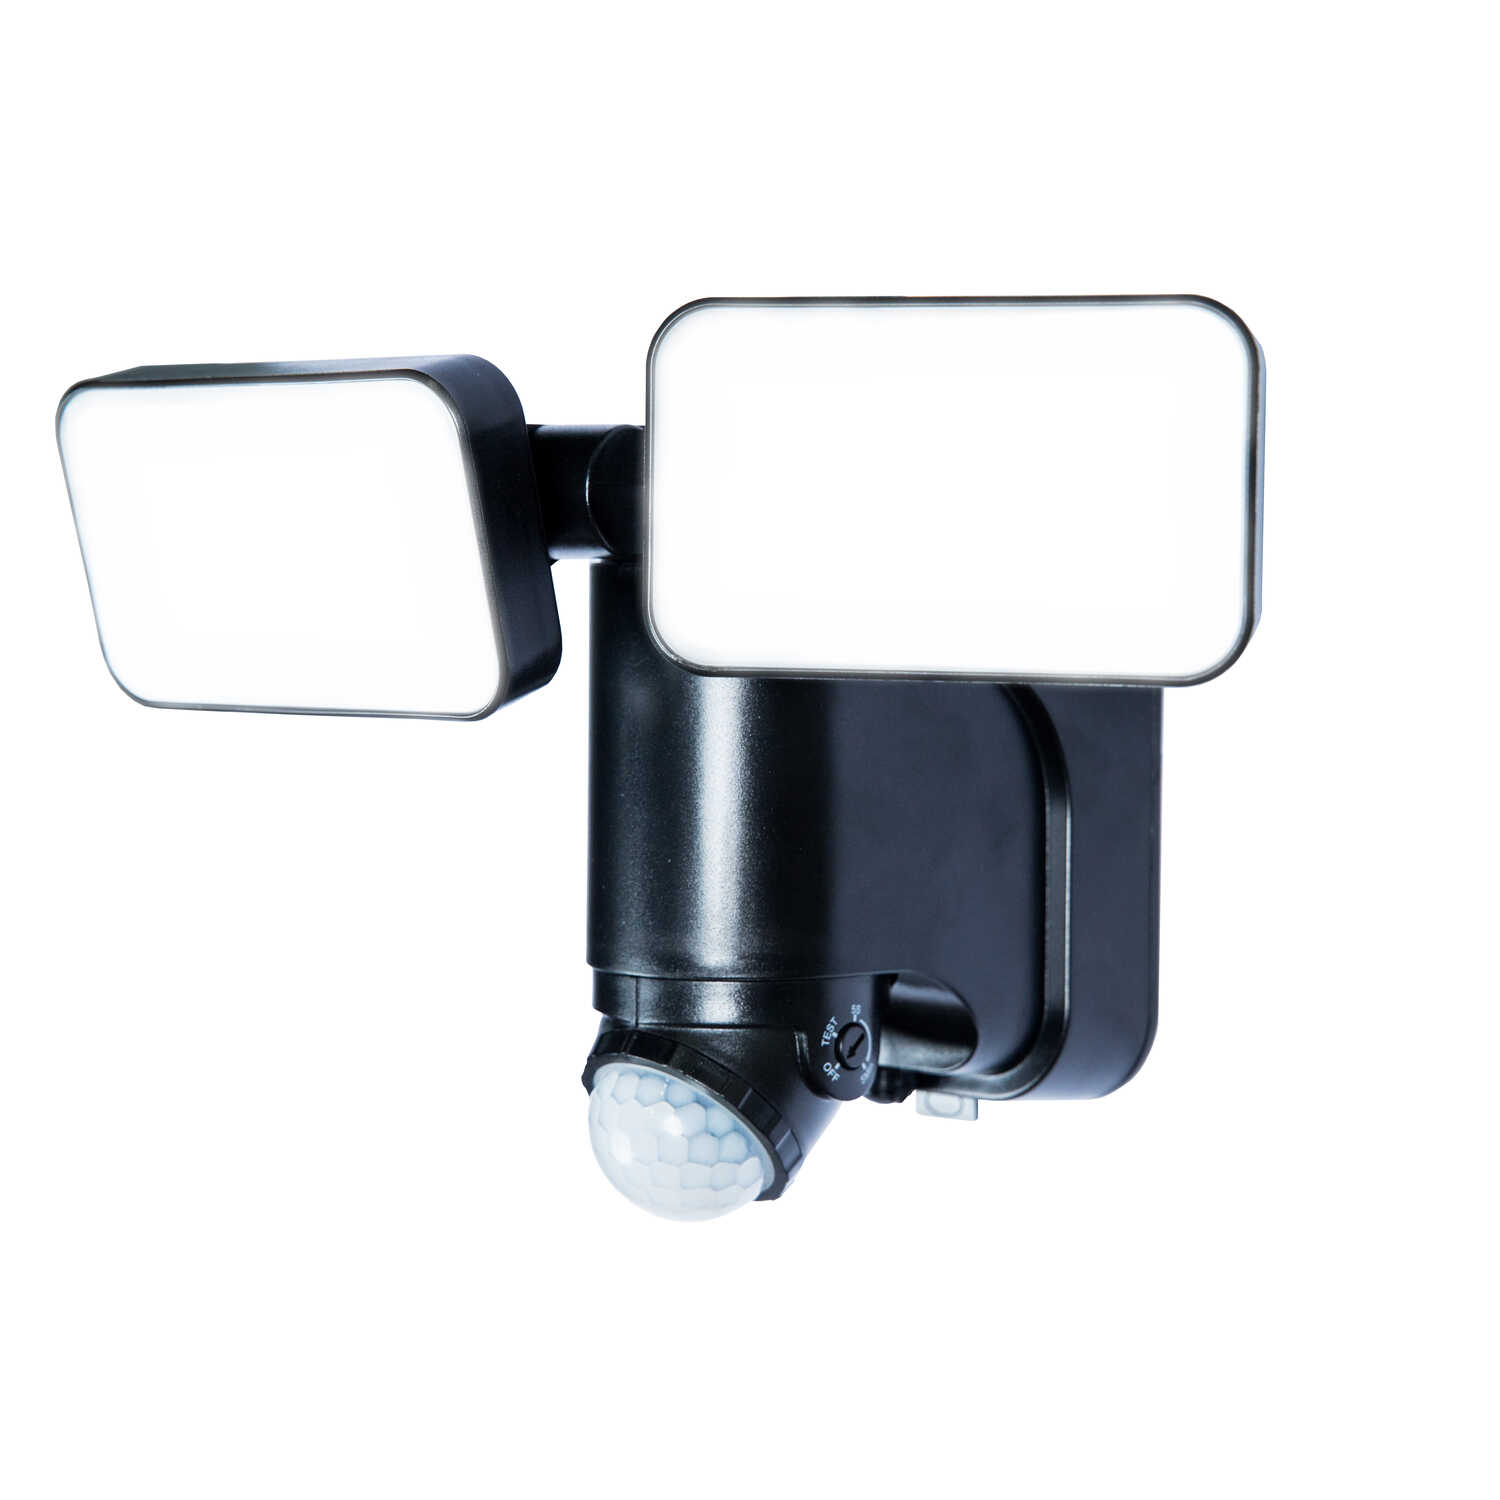 Heathco  Plastic  Solar Powered  Black  Motion-Sensing  LED  Security Light